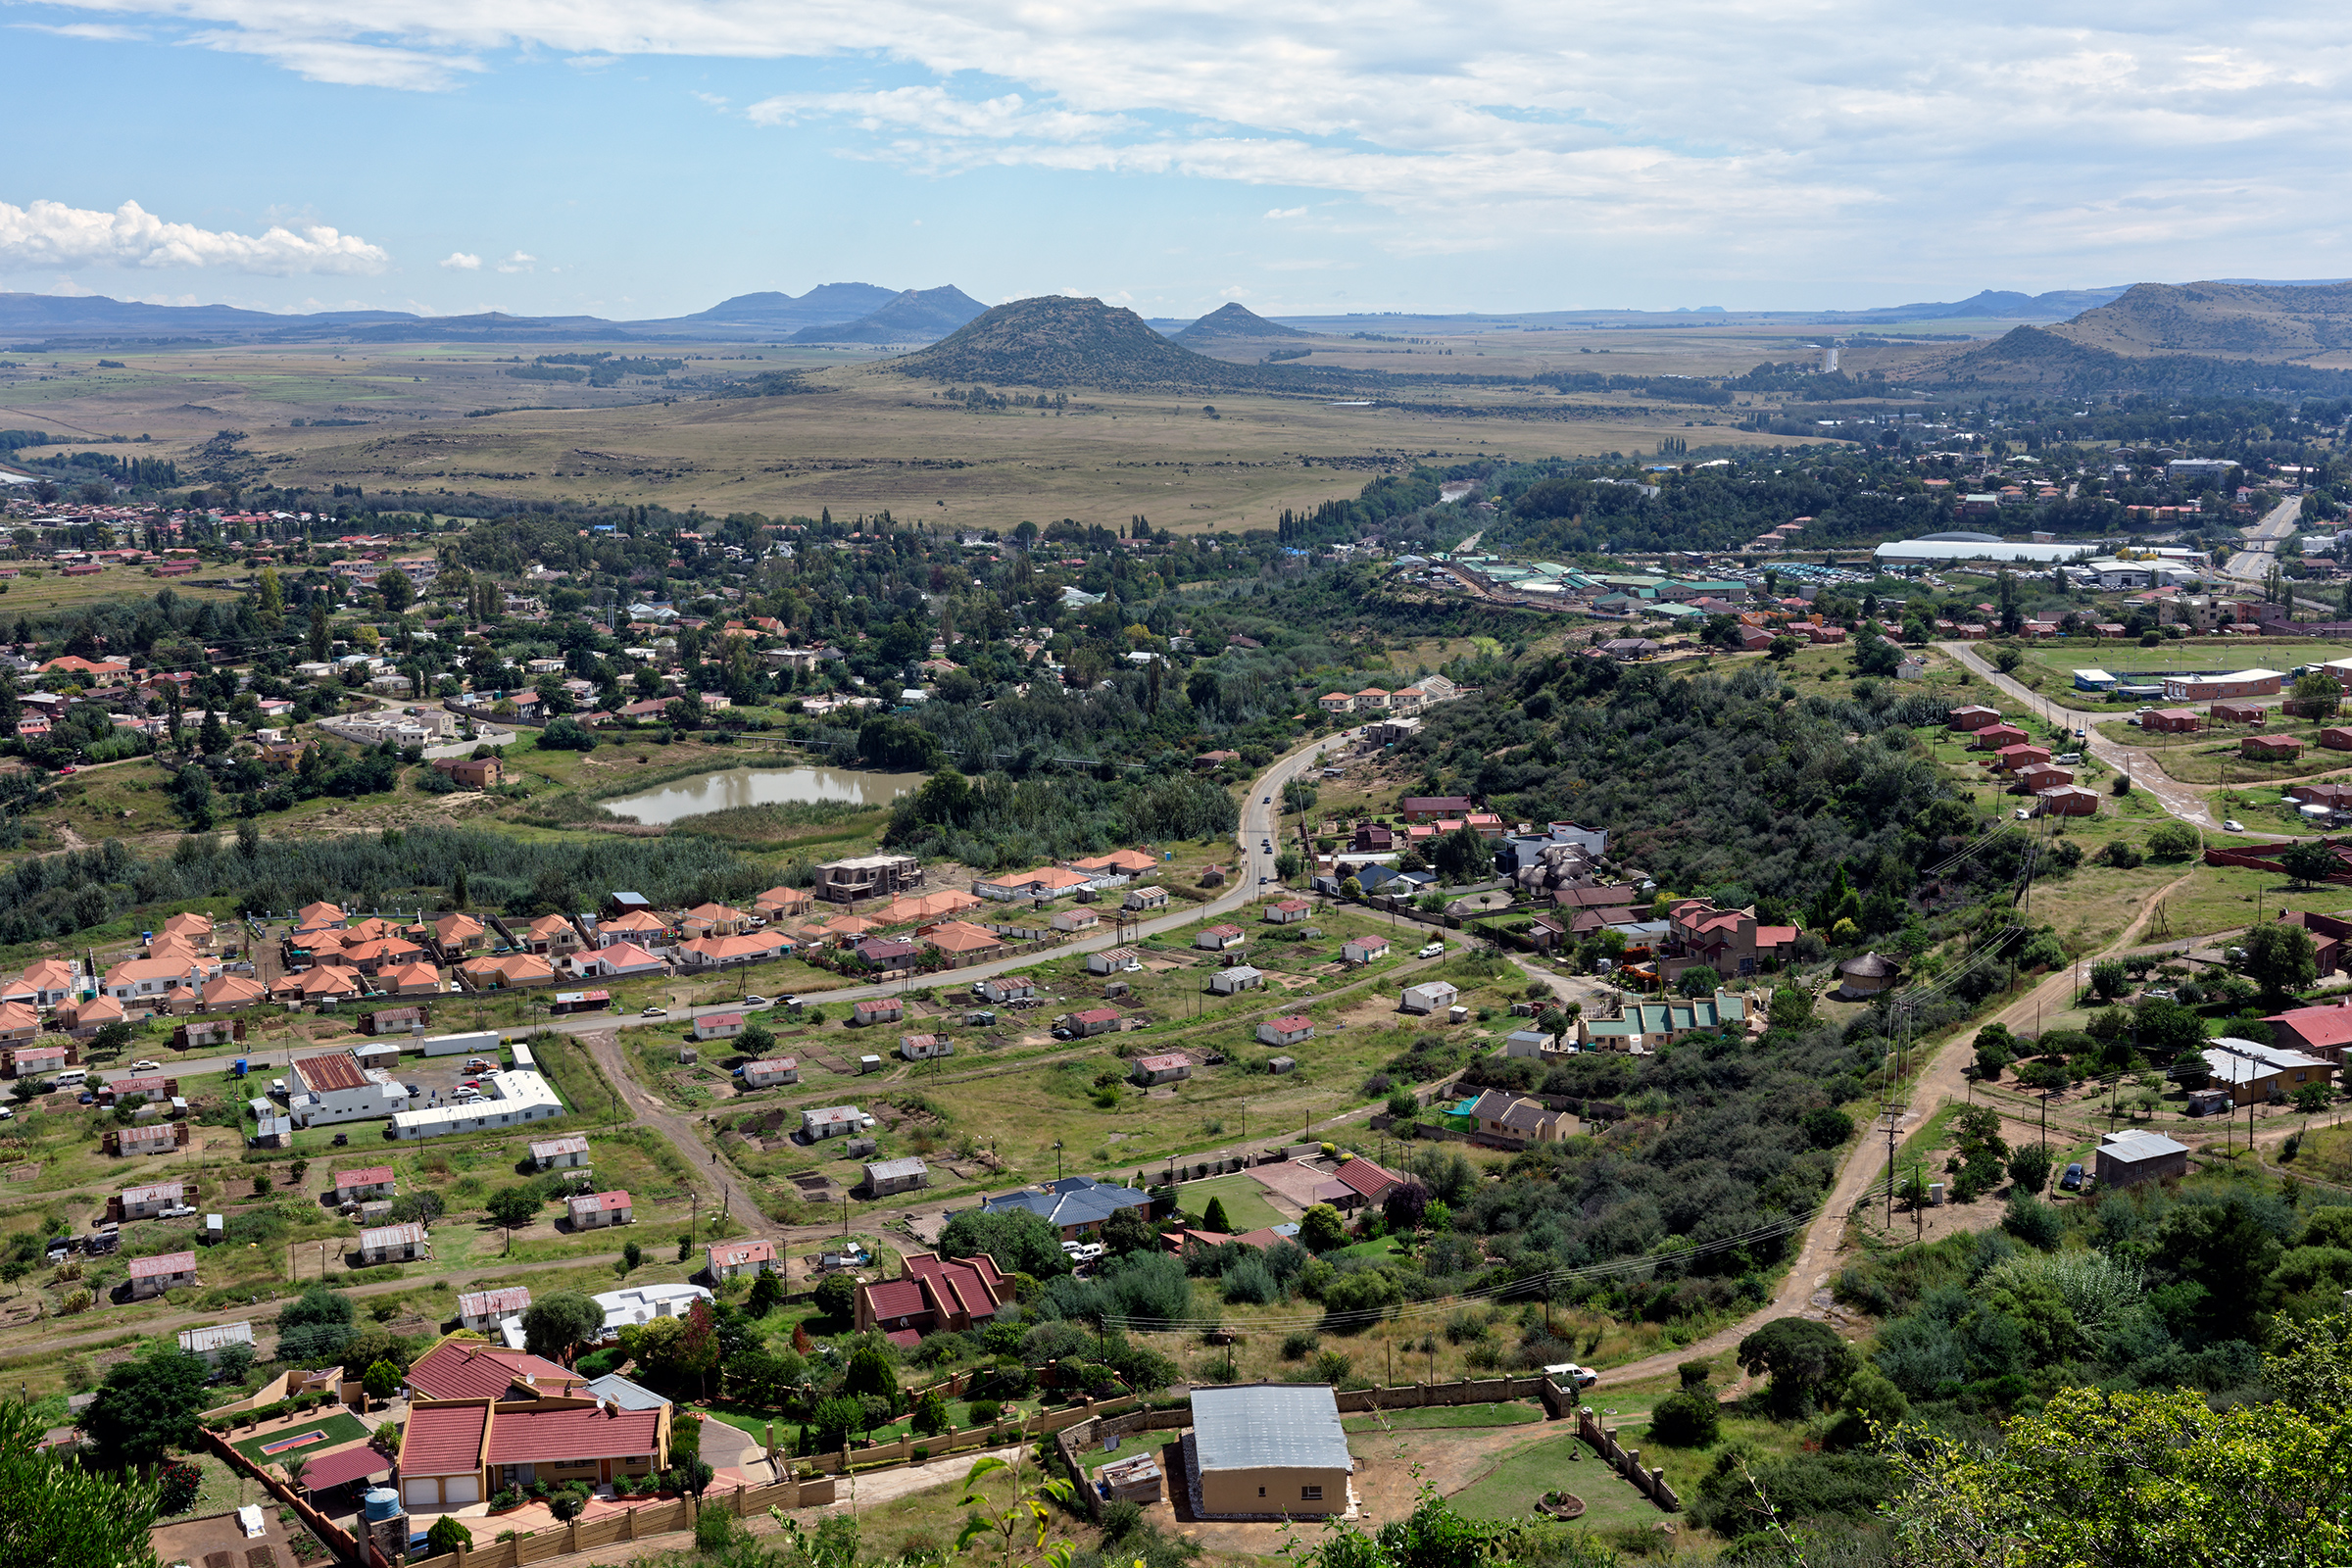 An aerial view of central Maseru, the capital of Lesotho.